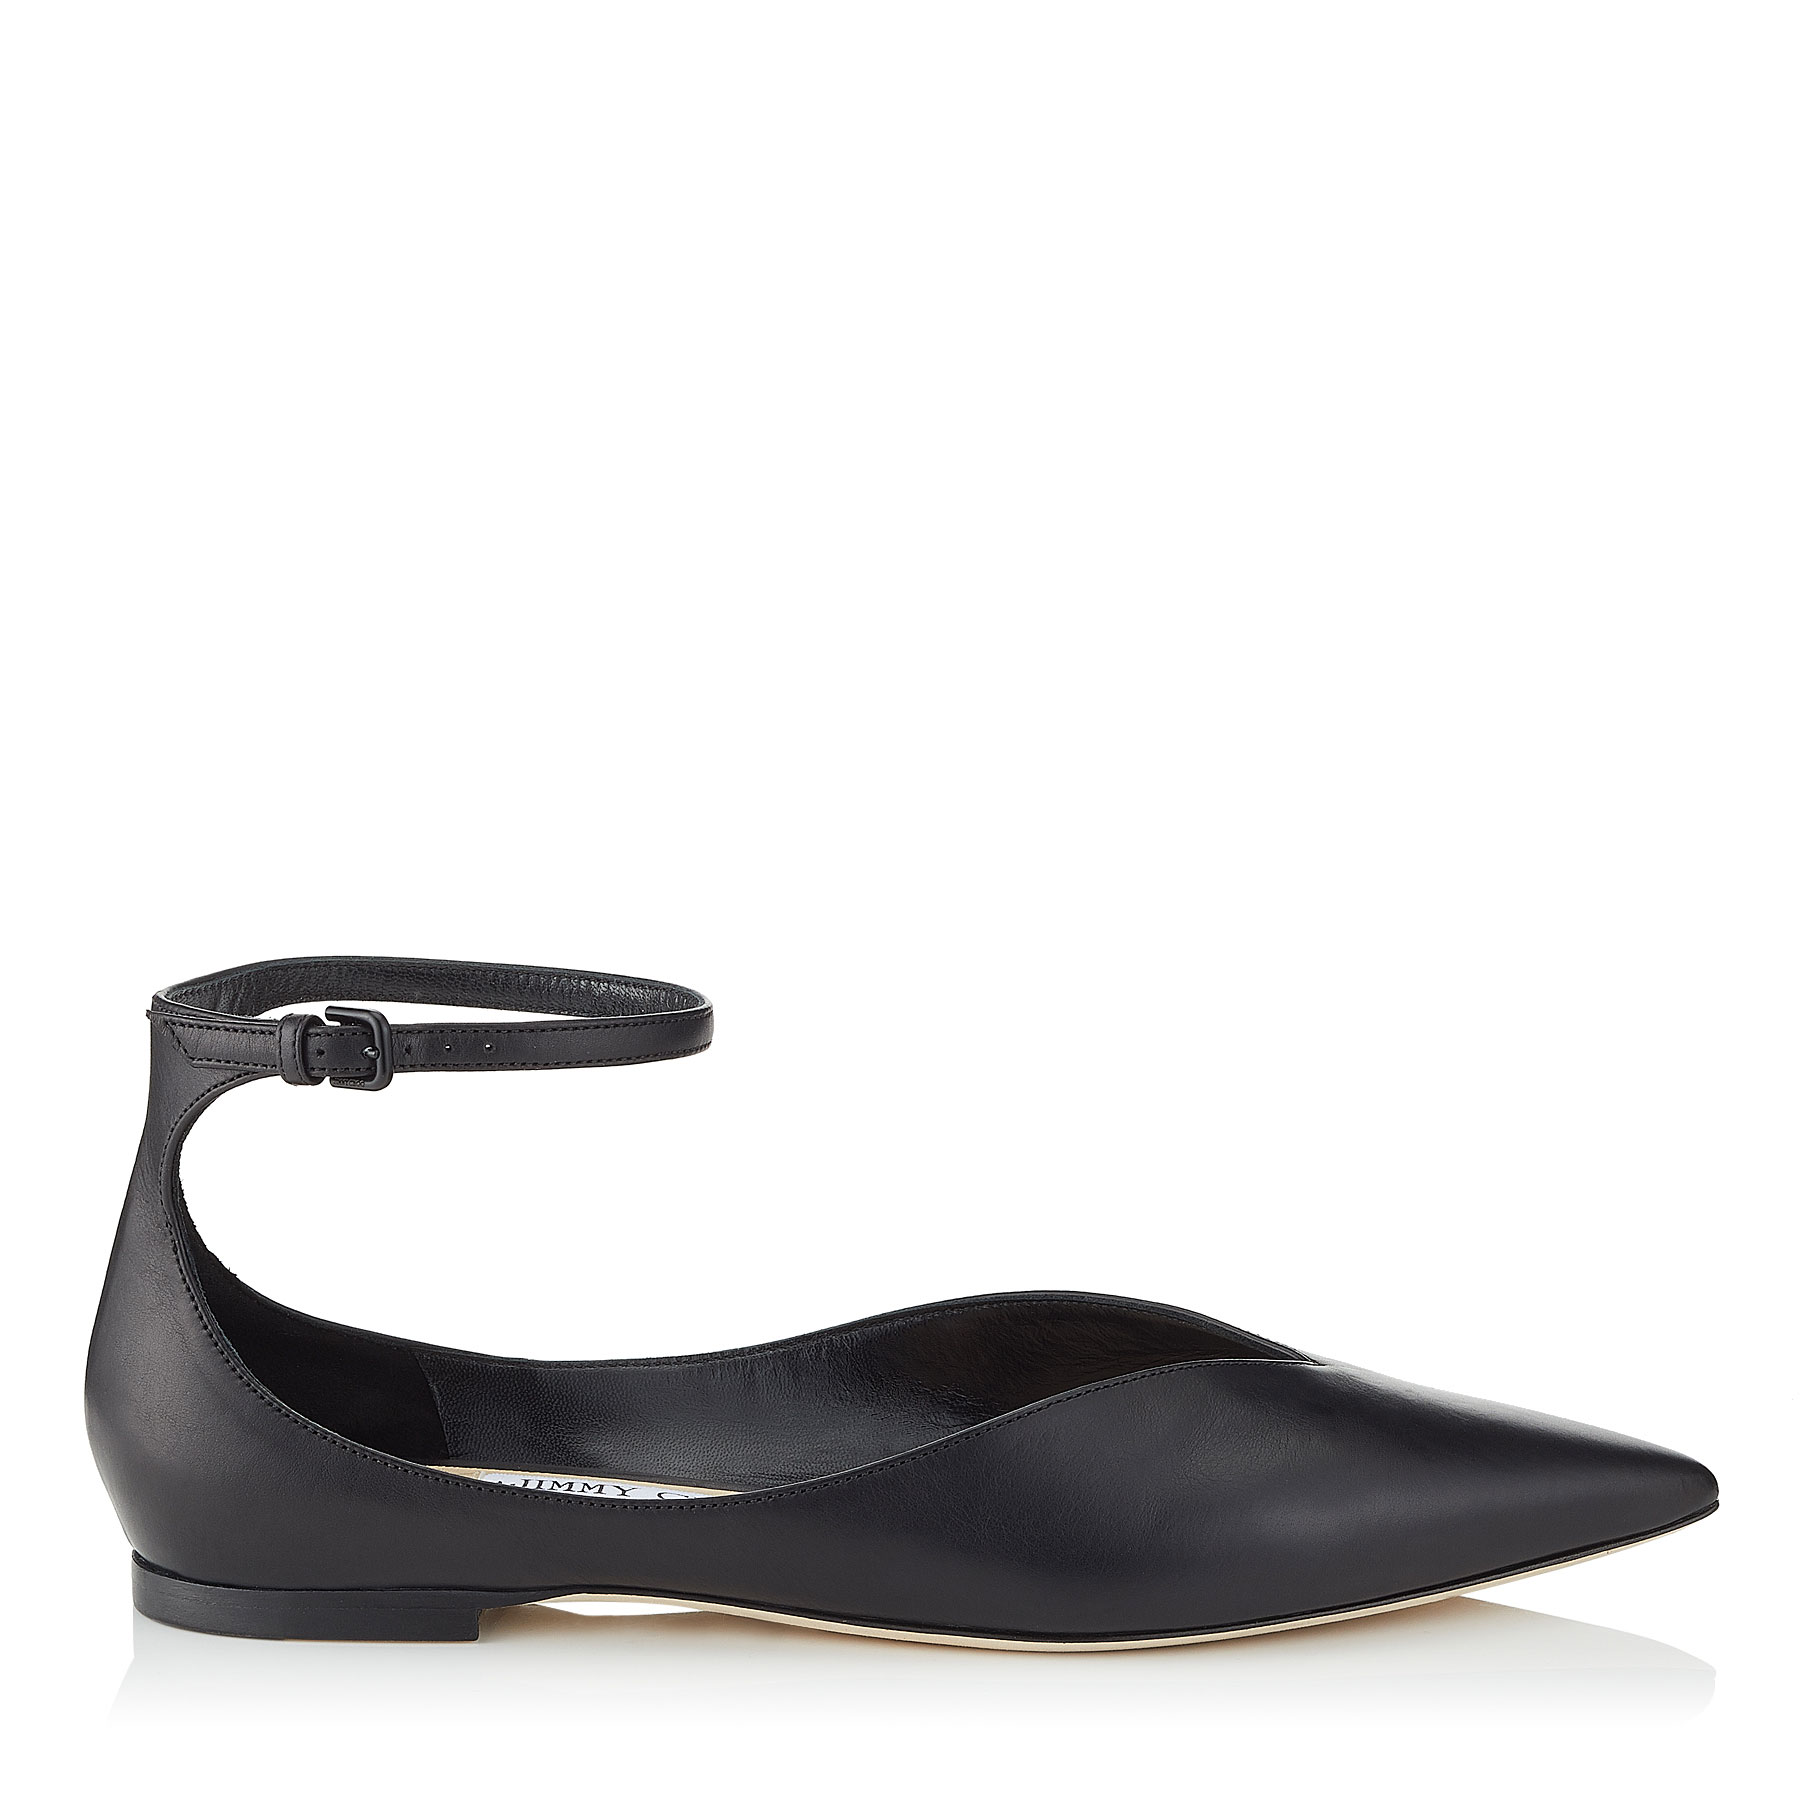 SONIA FLAT Black Calf Leather Pointy Toe Flats by Jimmy Choo